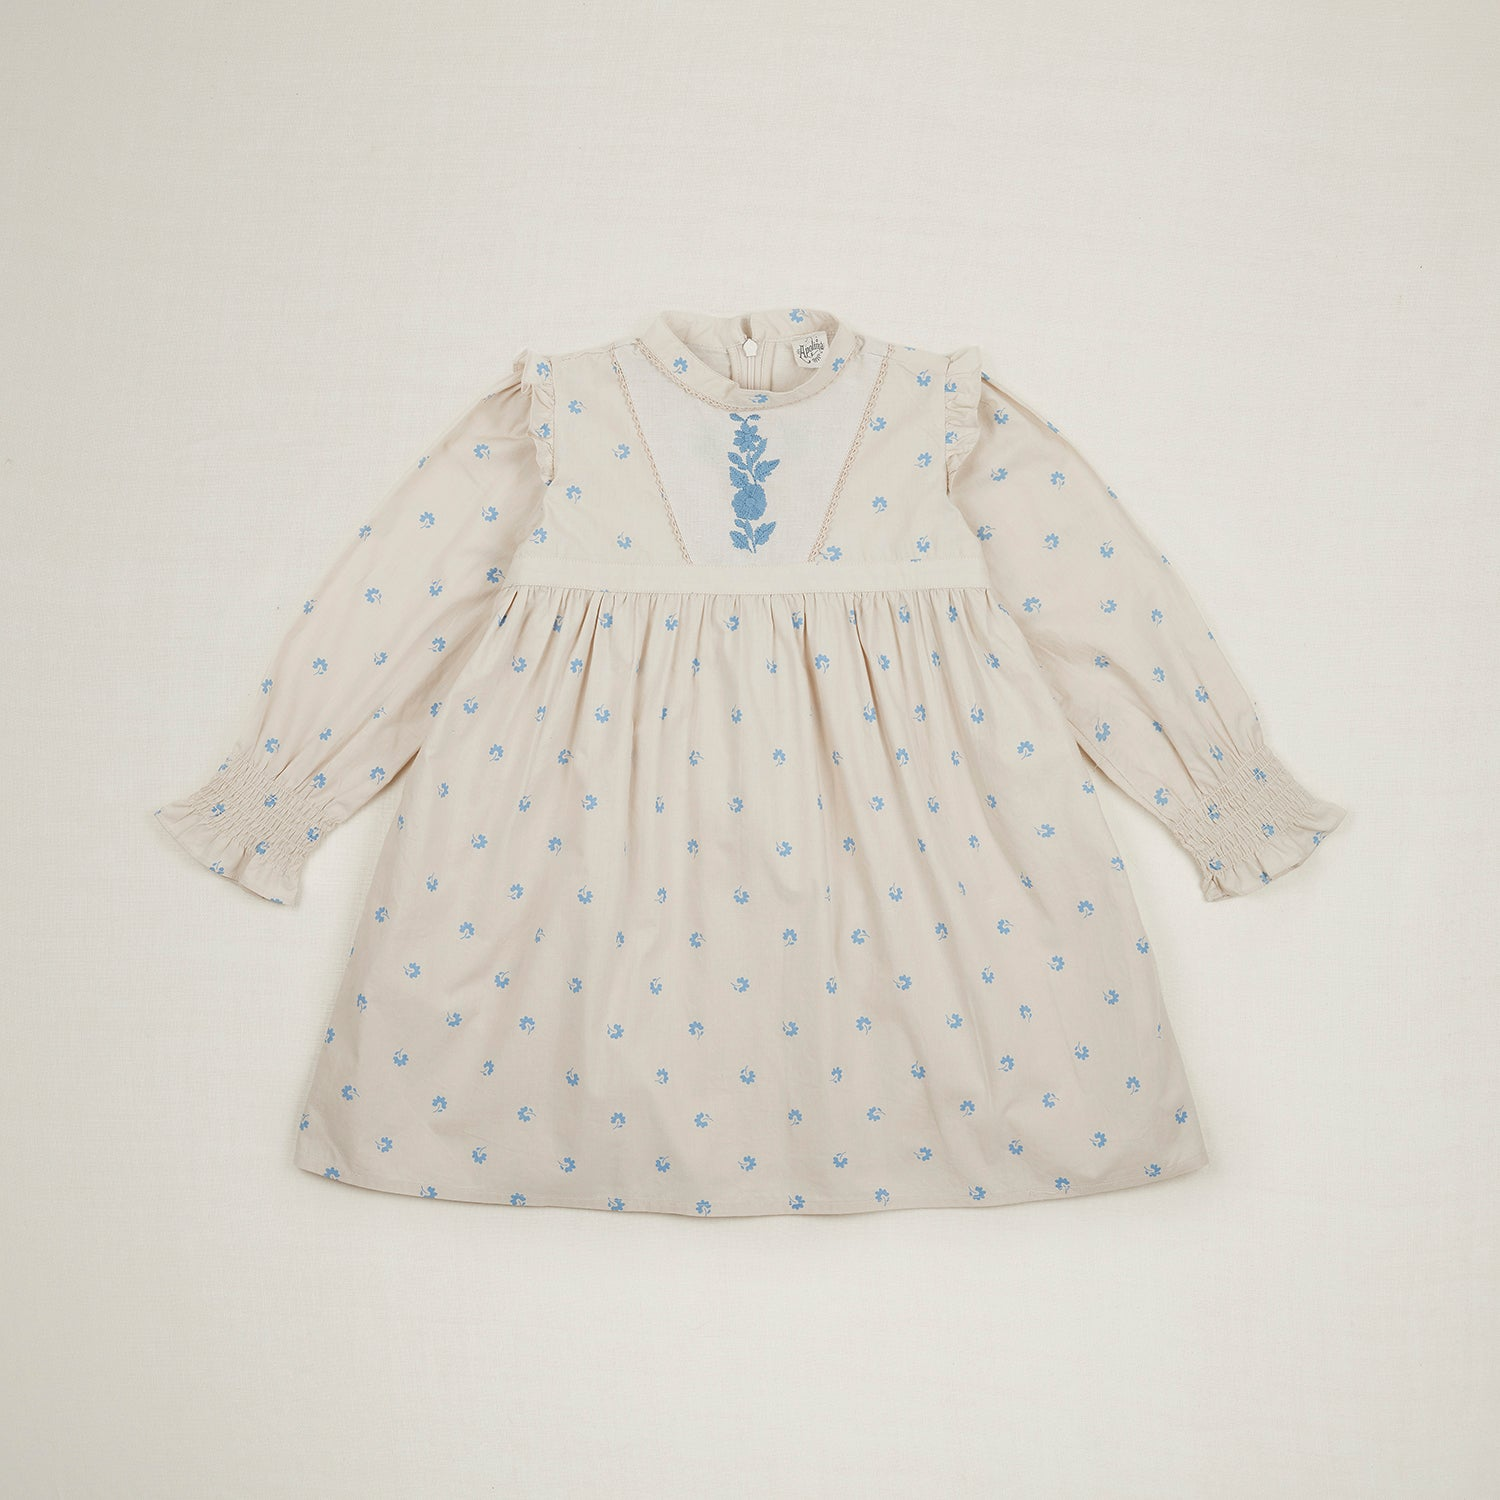 Apolina Janis Embroidered Kid's Prairie Dress Ivory Swedish Blue Bluegrass | BIEN BIEN www.bienbienshop.com